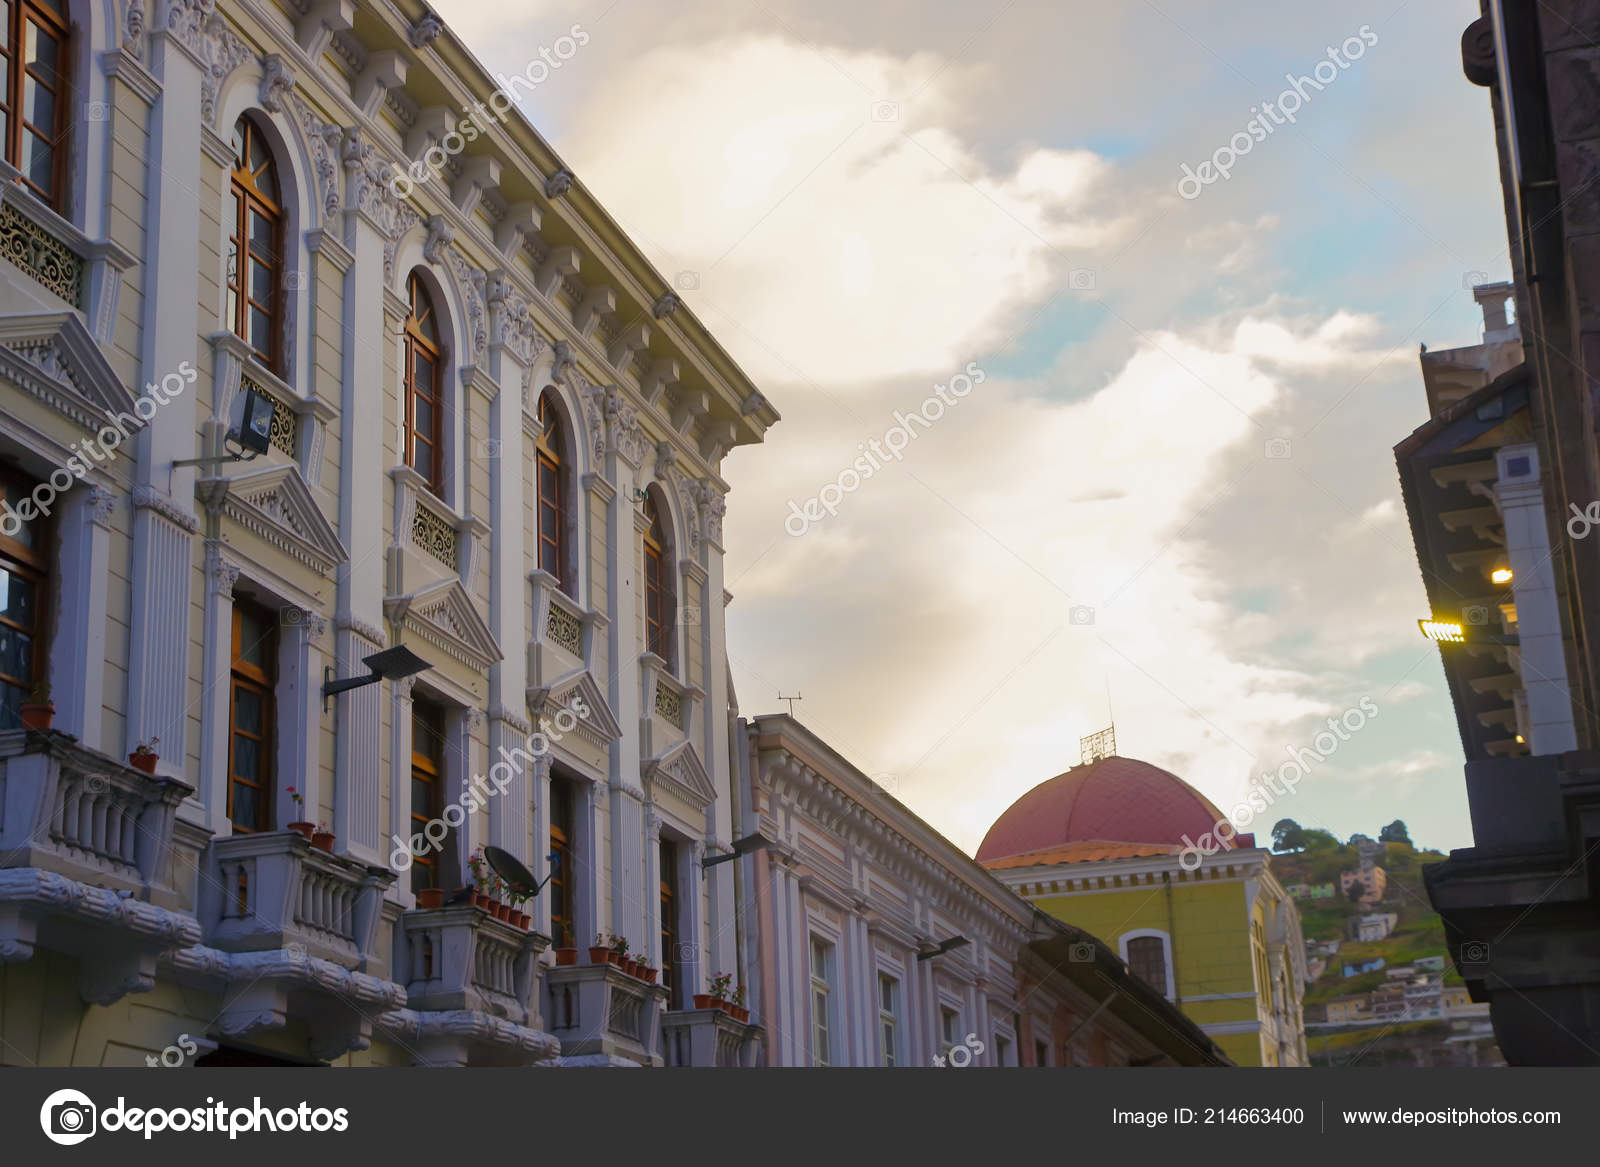 Quito Ecuador August 24 2018 Typical Colonial Architecture In